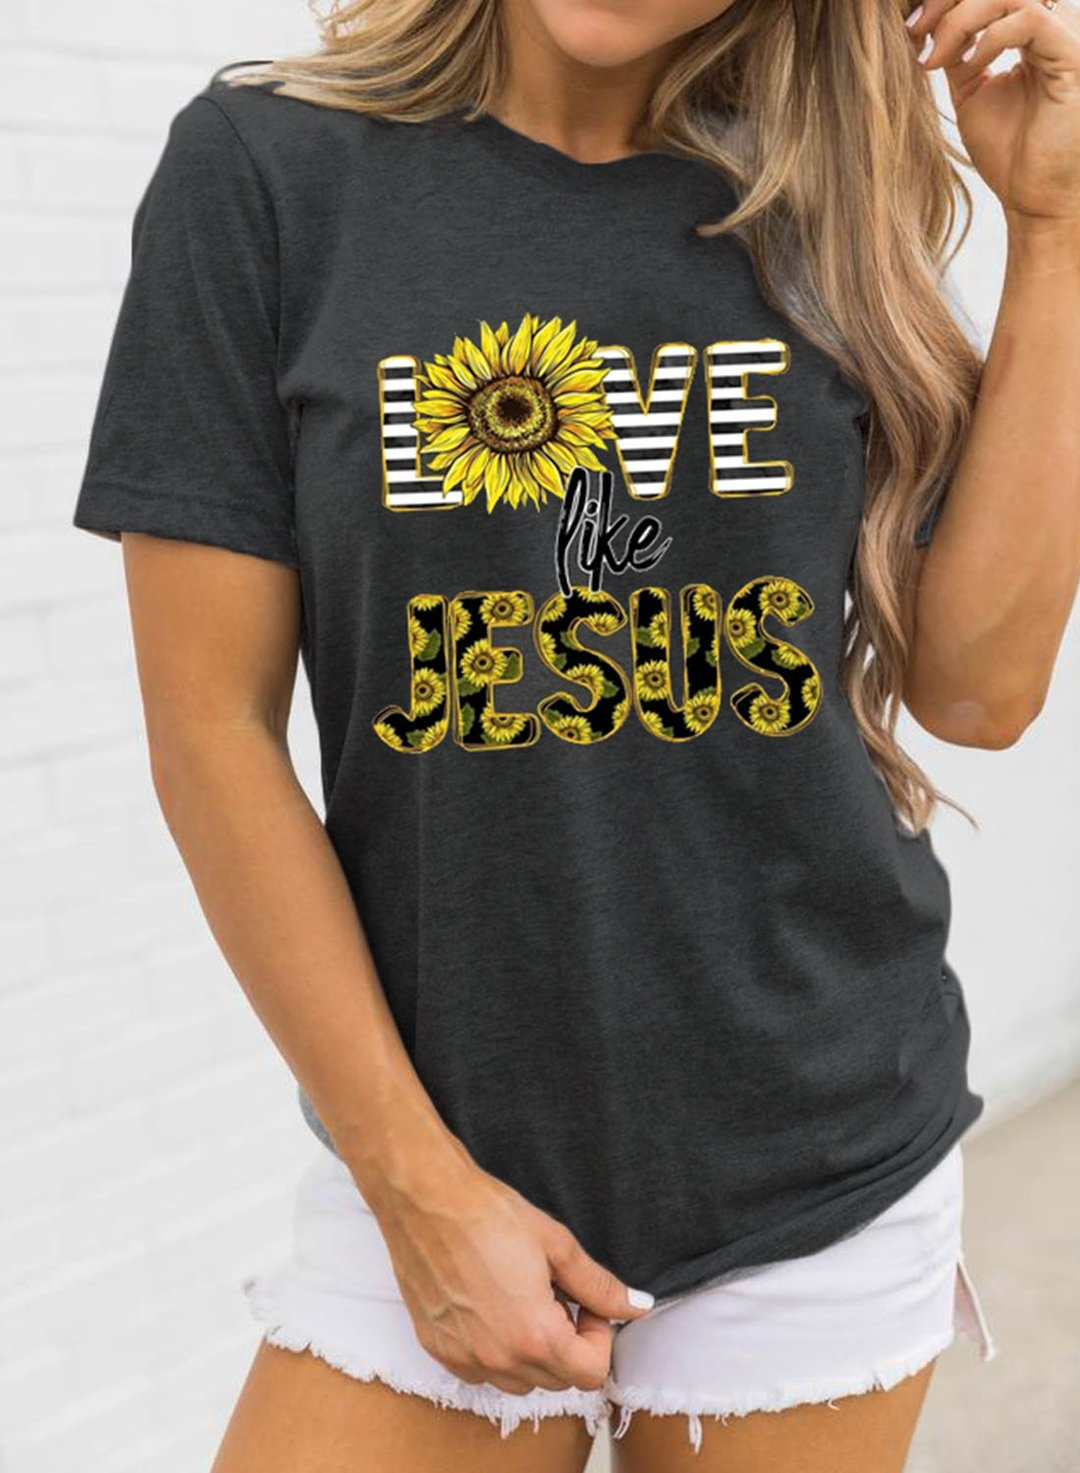 Gray Women's T-shirts Sunflower Letter Print Short Sleeve Round Neck Daily T-shirt LC2525428-11